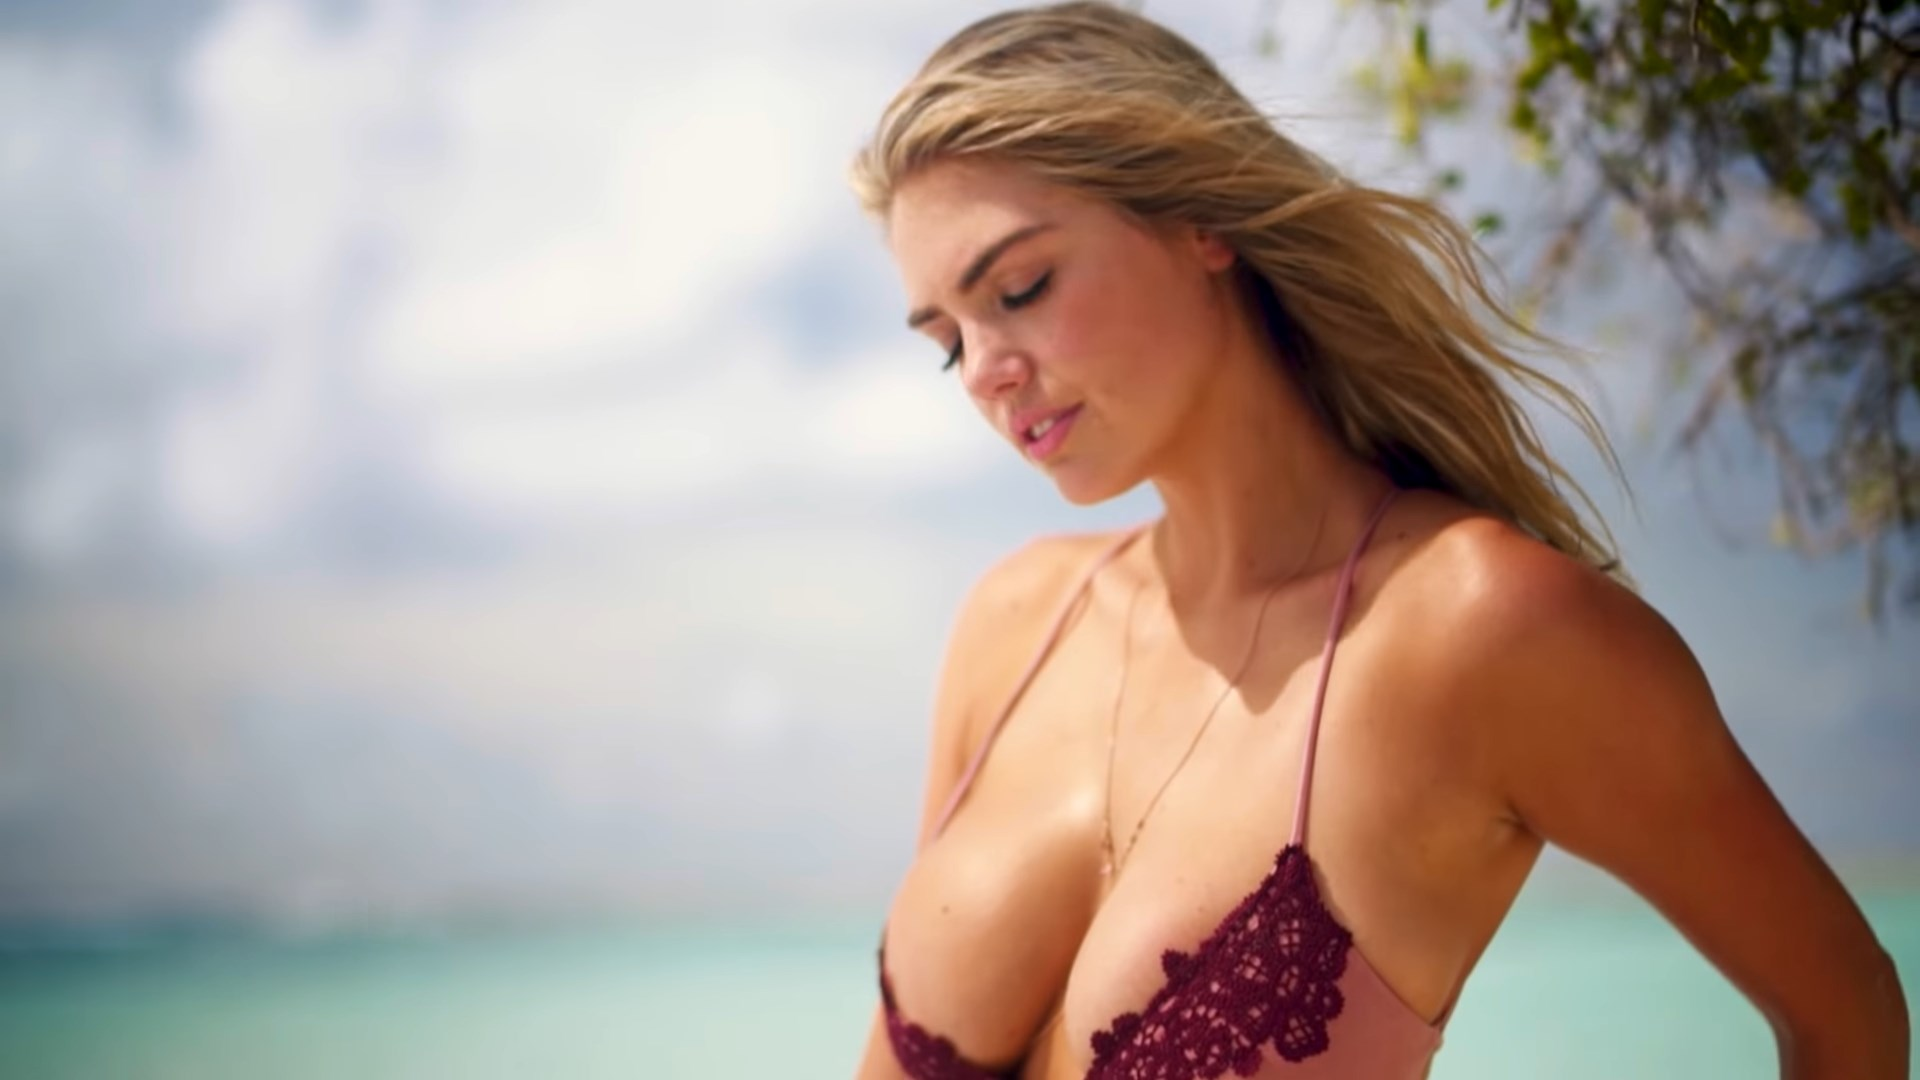 Kate Upton sizzles in a Barely-There Bikini - INTIMATES - Sports Illustrated Swimsuit - YouTube.MKV_snapshot_00.33_[2018.12.22_02.52.50].jpg